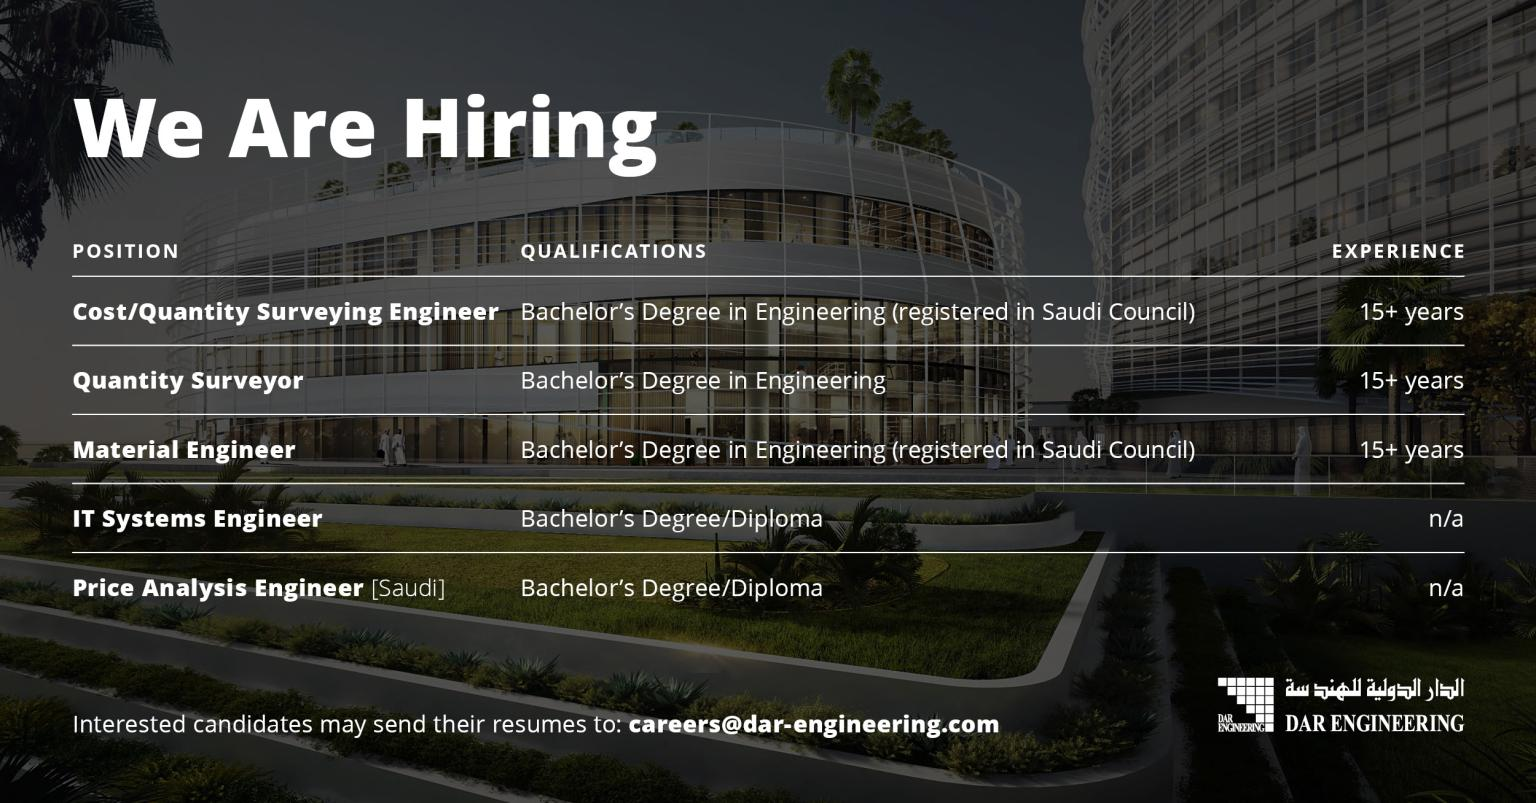 DAR-Engineering-Consultants-Limited-Riyadh-Saudi-Arabia-Jobs-05-Nov-2019